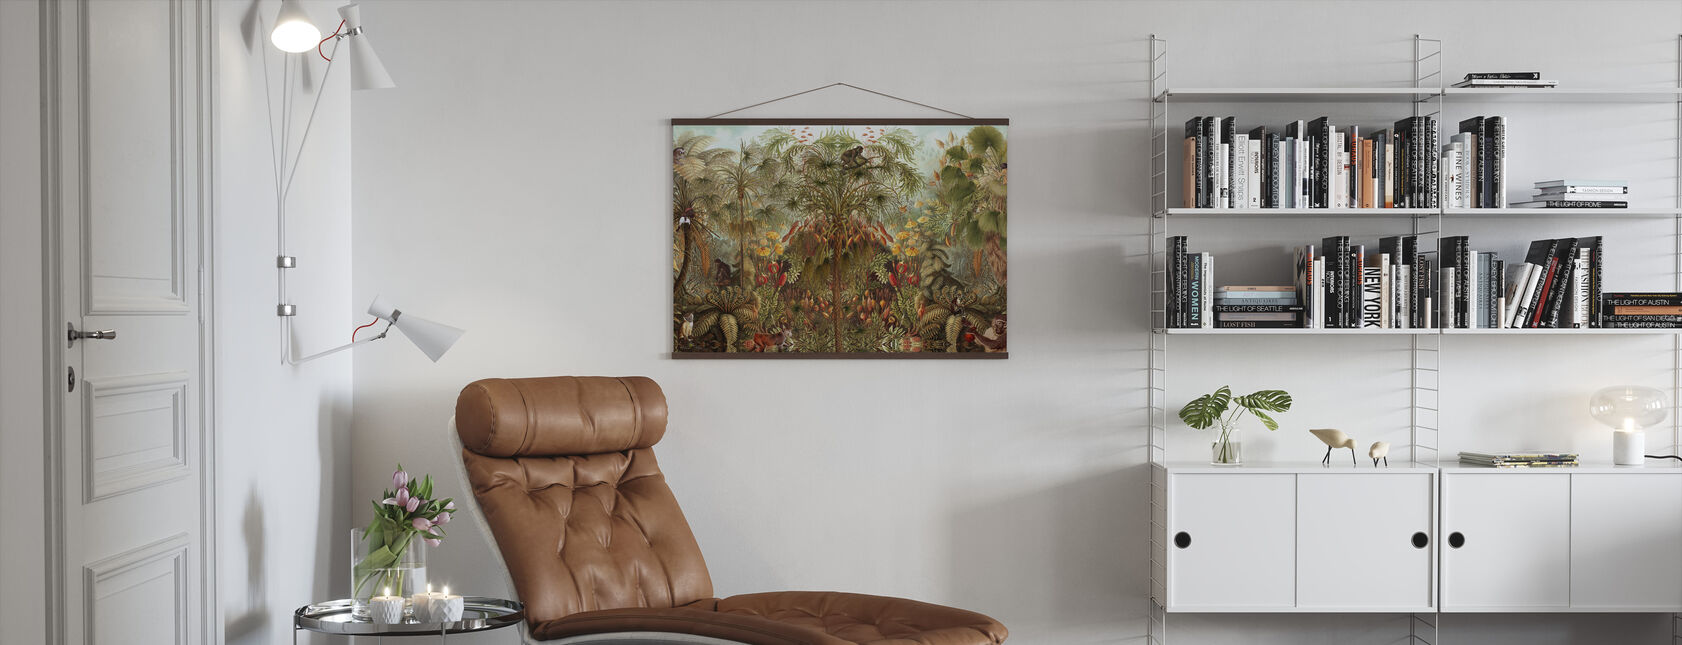 Monkey See Monkey Wah - Poster - Living Room